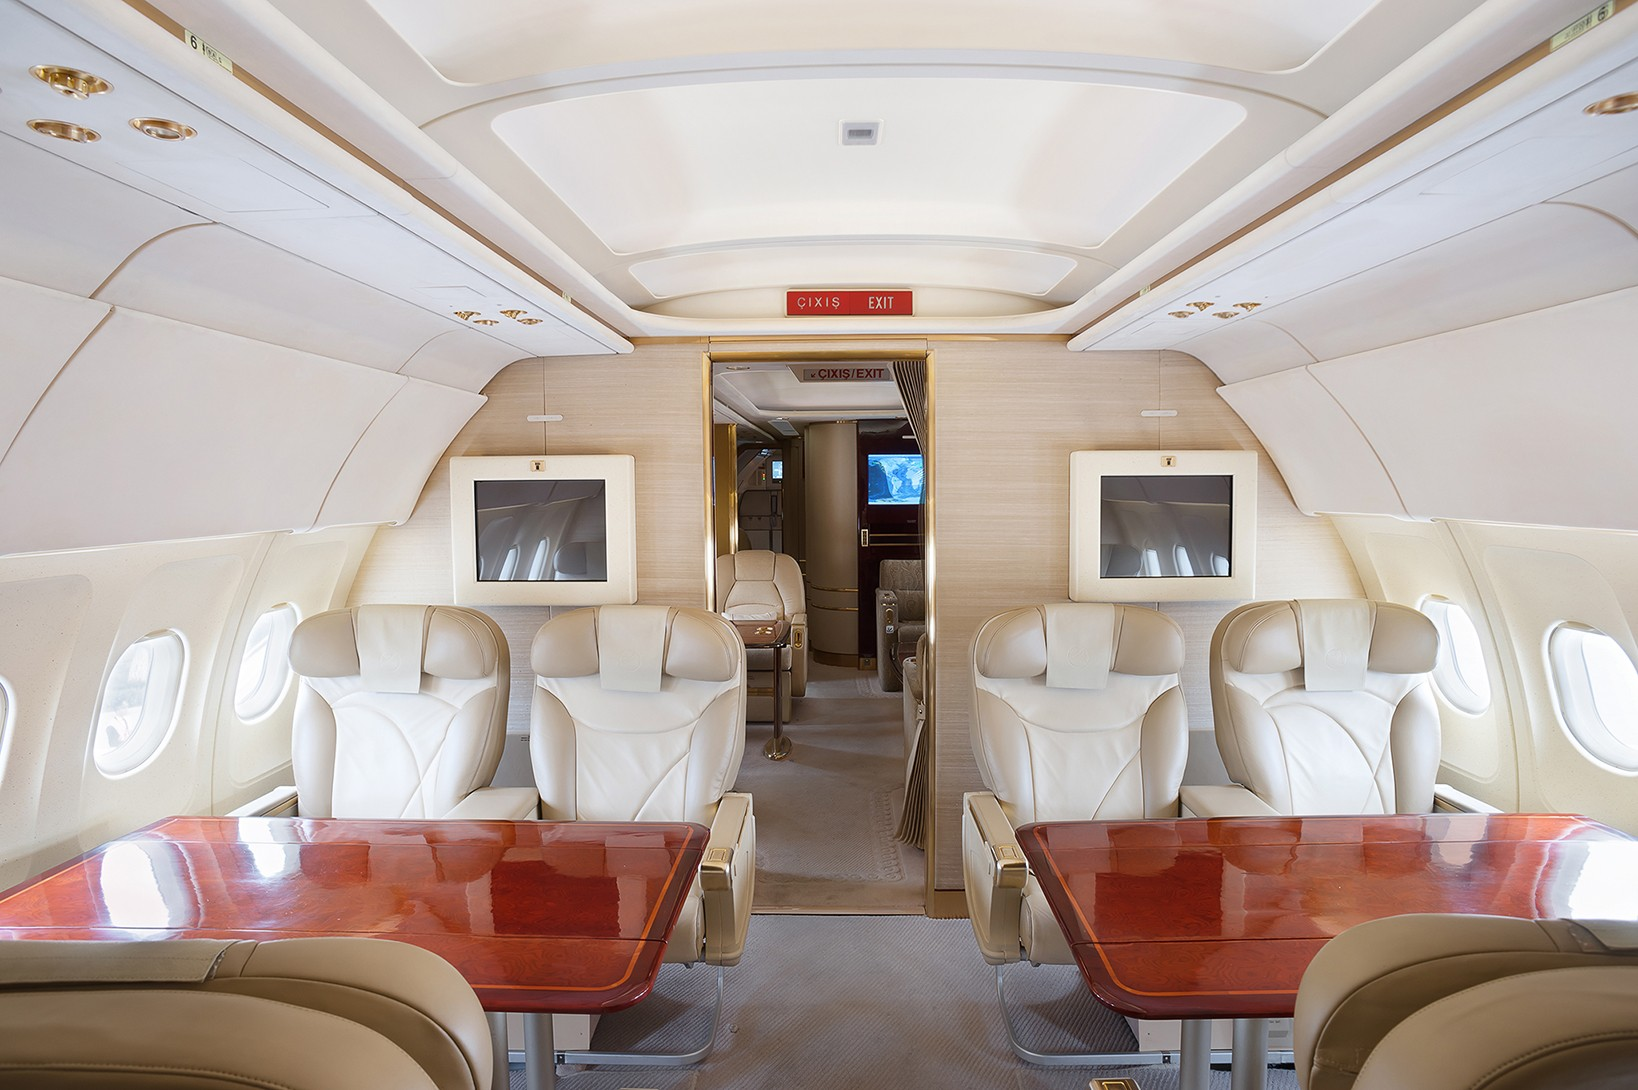 business jet salon in the gallery of the interior photographer